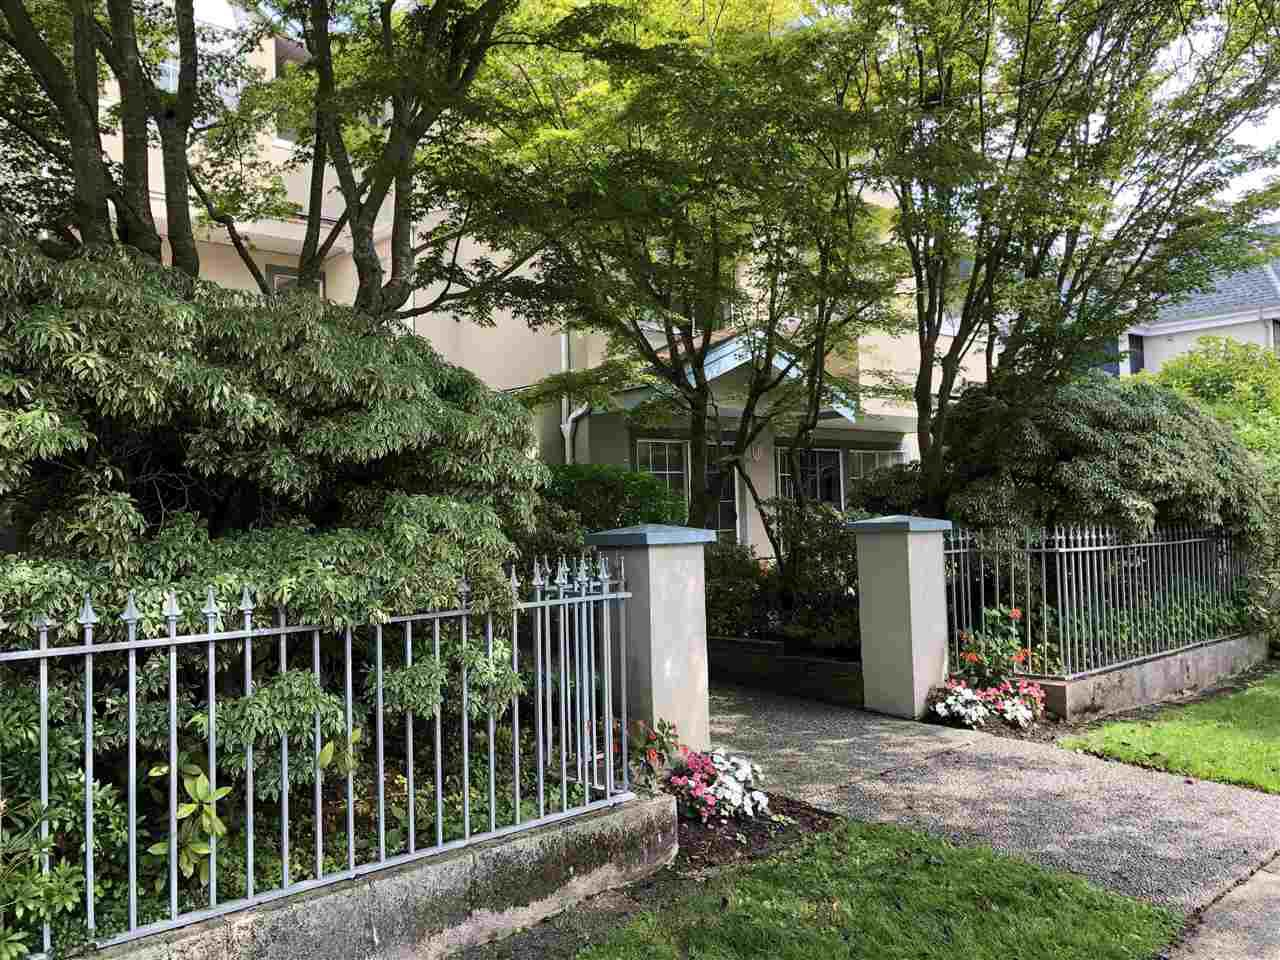 Main Photo: 101 825 W 15TH Avenue in Vancouver: Fairview VW Condo for sale (Vancouver West)  : MLS®# R2393622